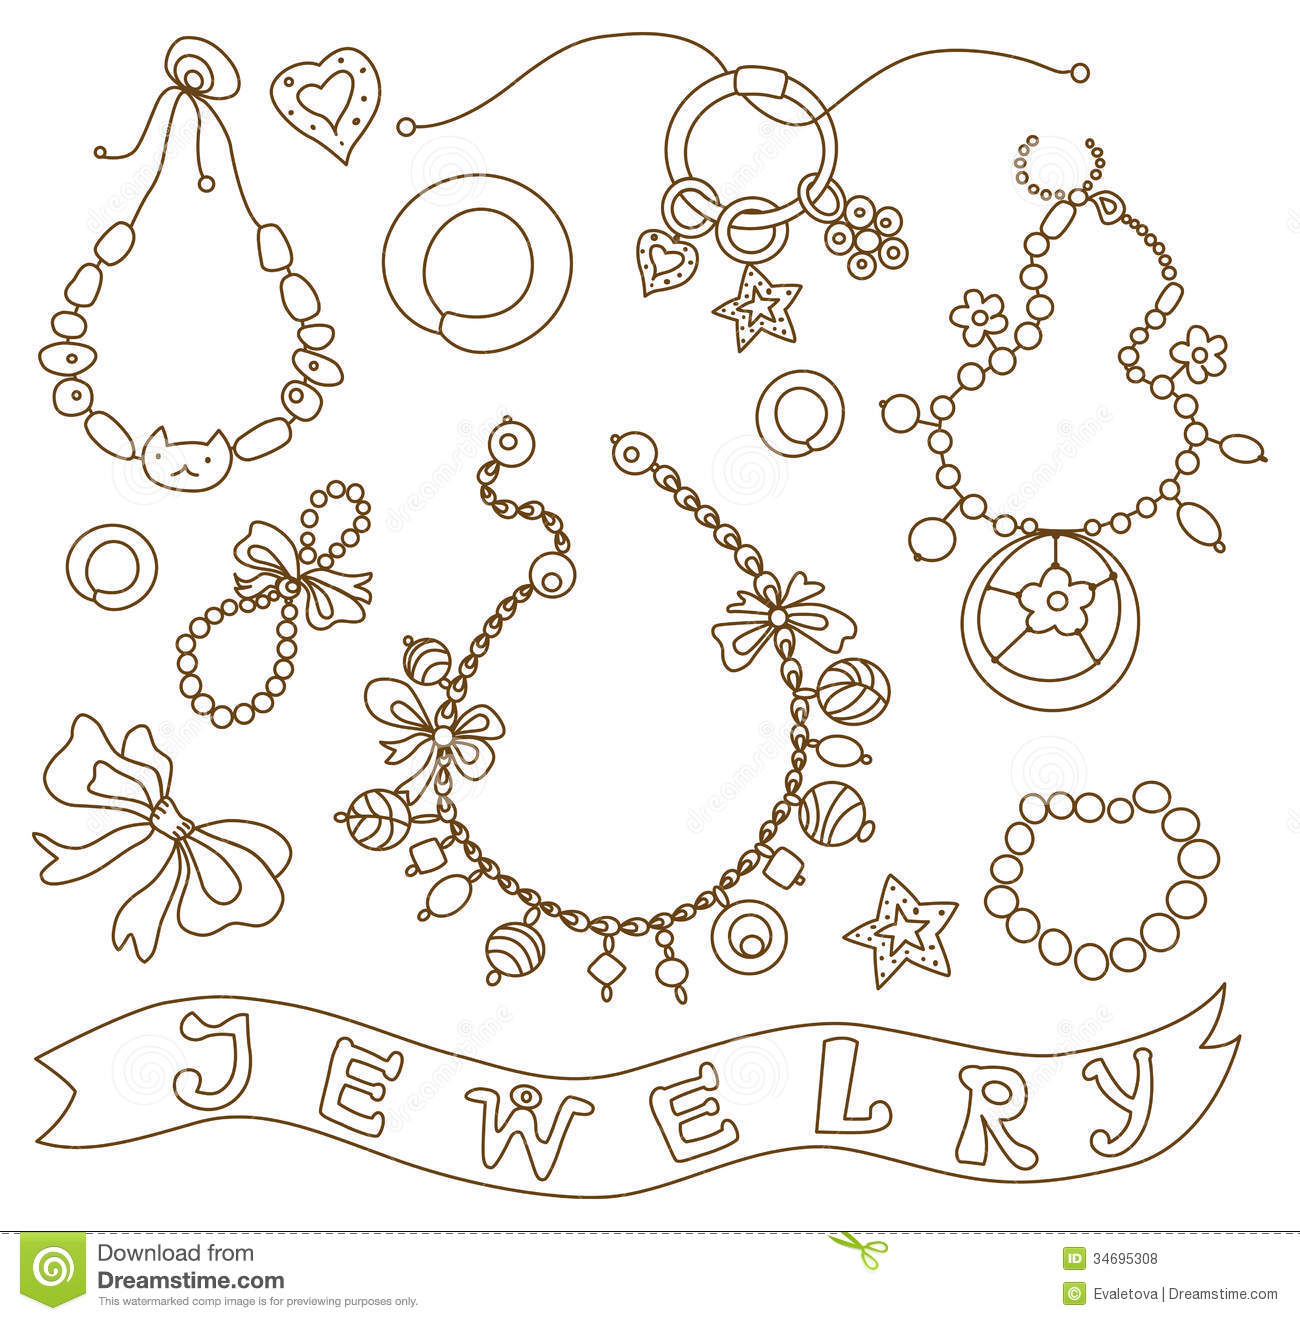 jewlery coloring pages - photo#1